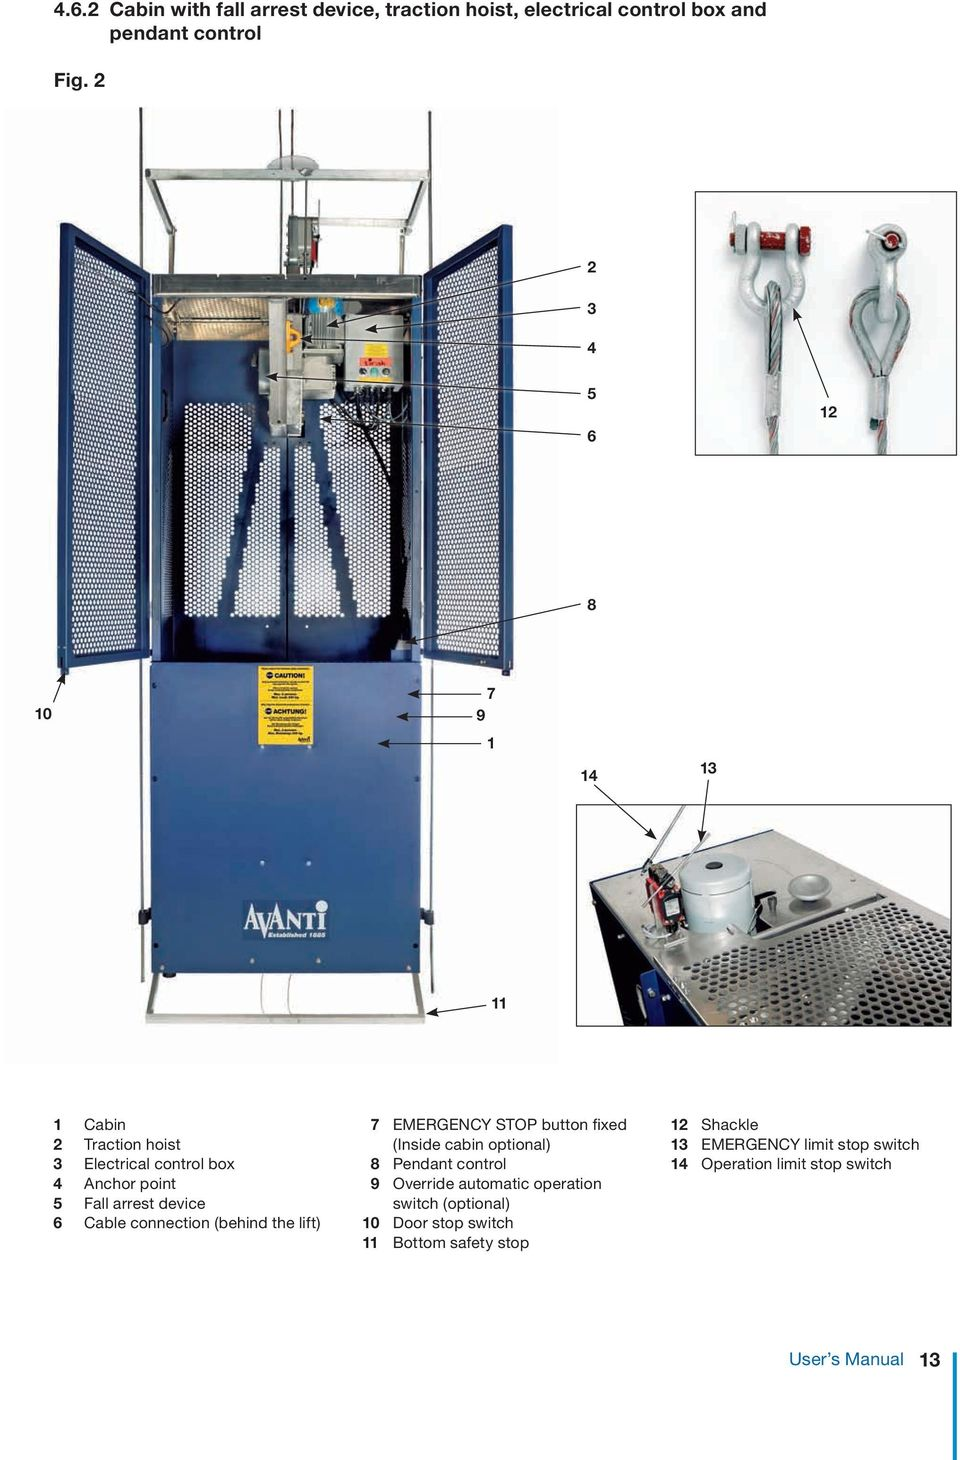 Original Avanti Service Lift User S Manual And Installation Button Wiring Diagram Likewise Switch Besides Emergency Cable Connection Behind The 7 Stop Fixed Inside Cabin Optional